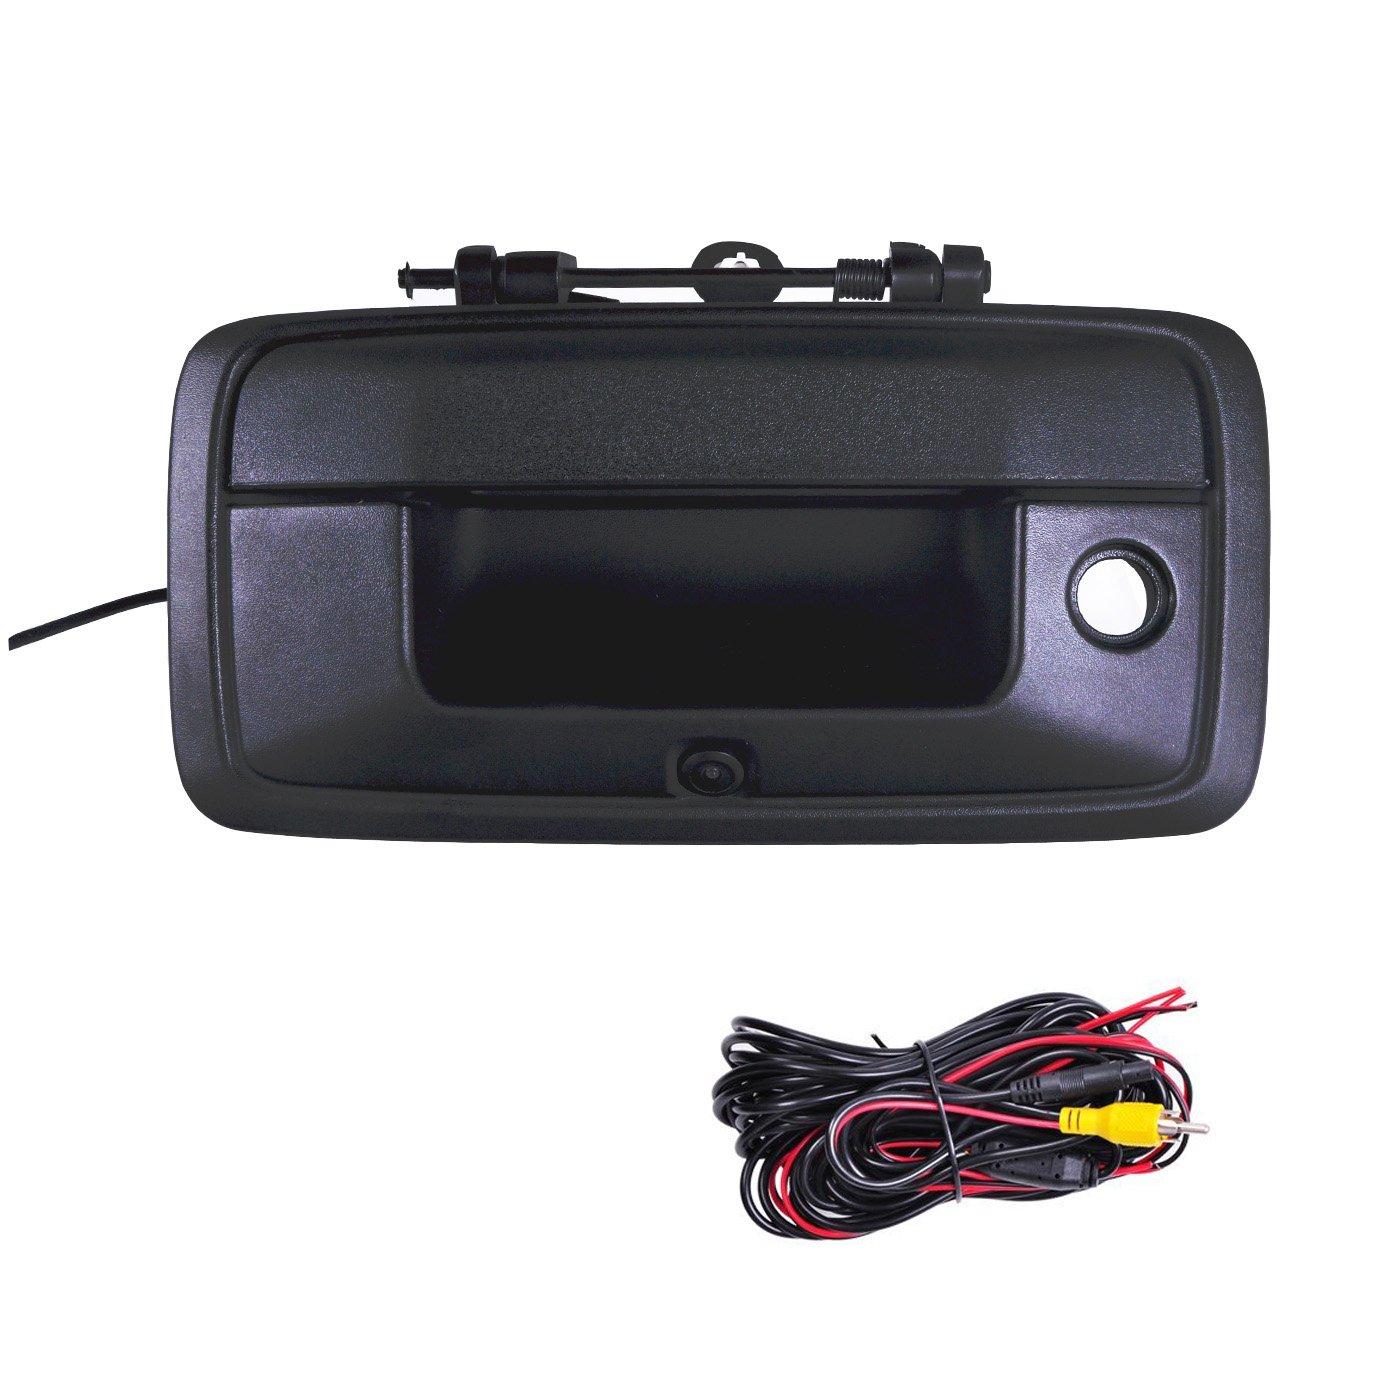 OMOTOR Tailgate Backup Reverse Handle with Camera Fit for Chevrolet Silverado//GMC Sierra 2007 2008 2009 2010 2011 2012 2013 Black